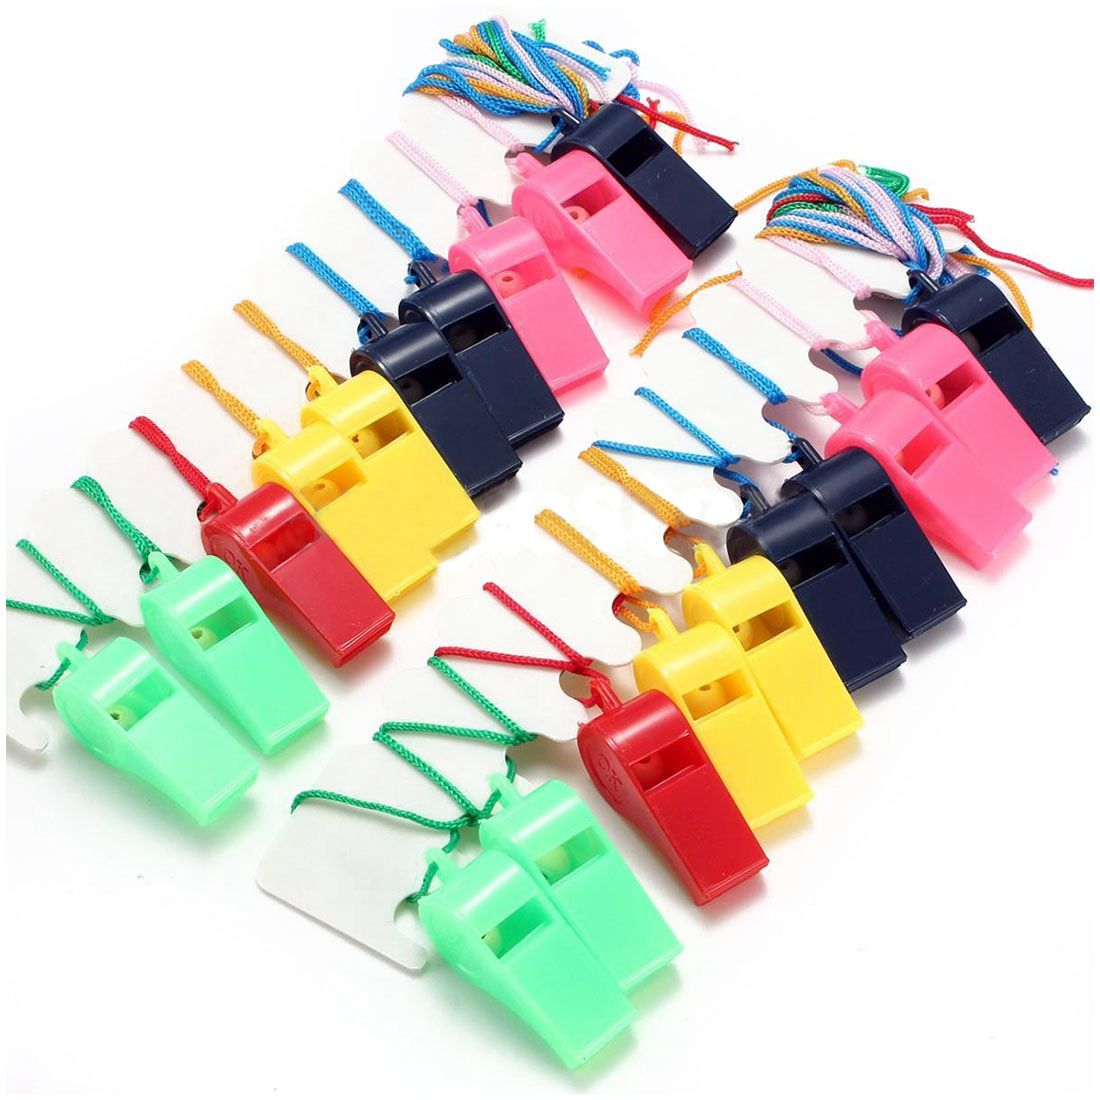 20pcs Whistle Referee Whistle Football Whistle Football Plastic